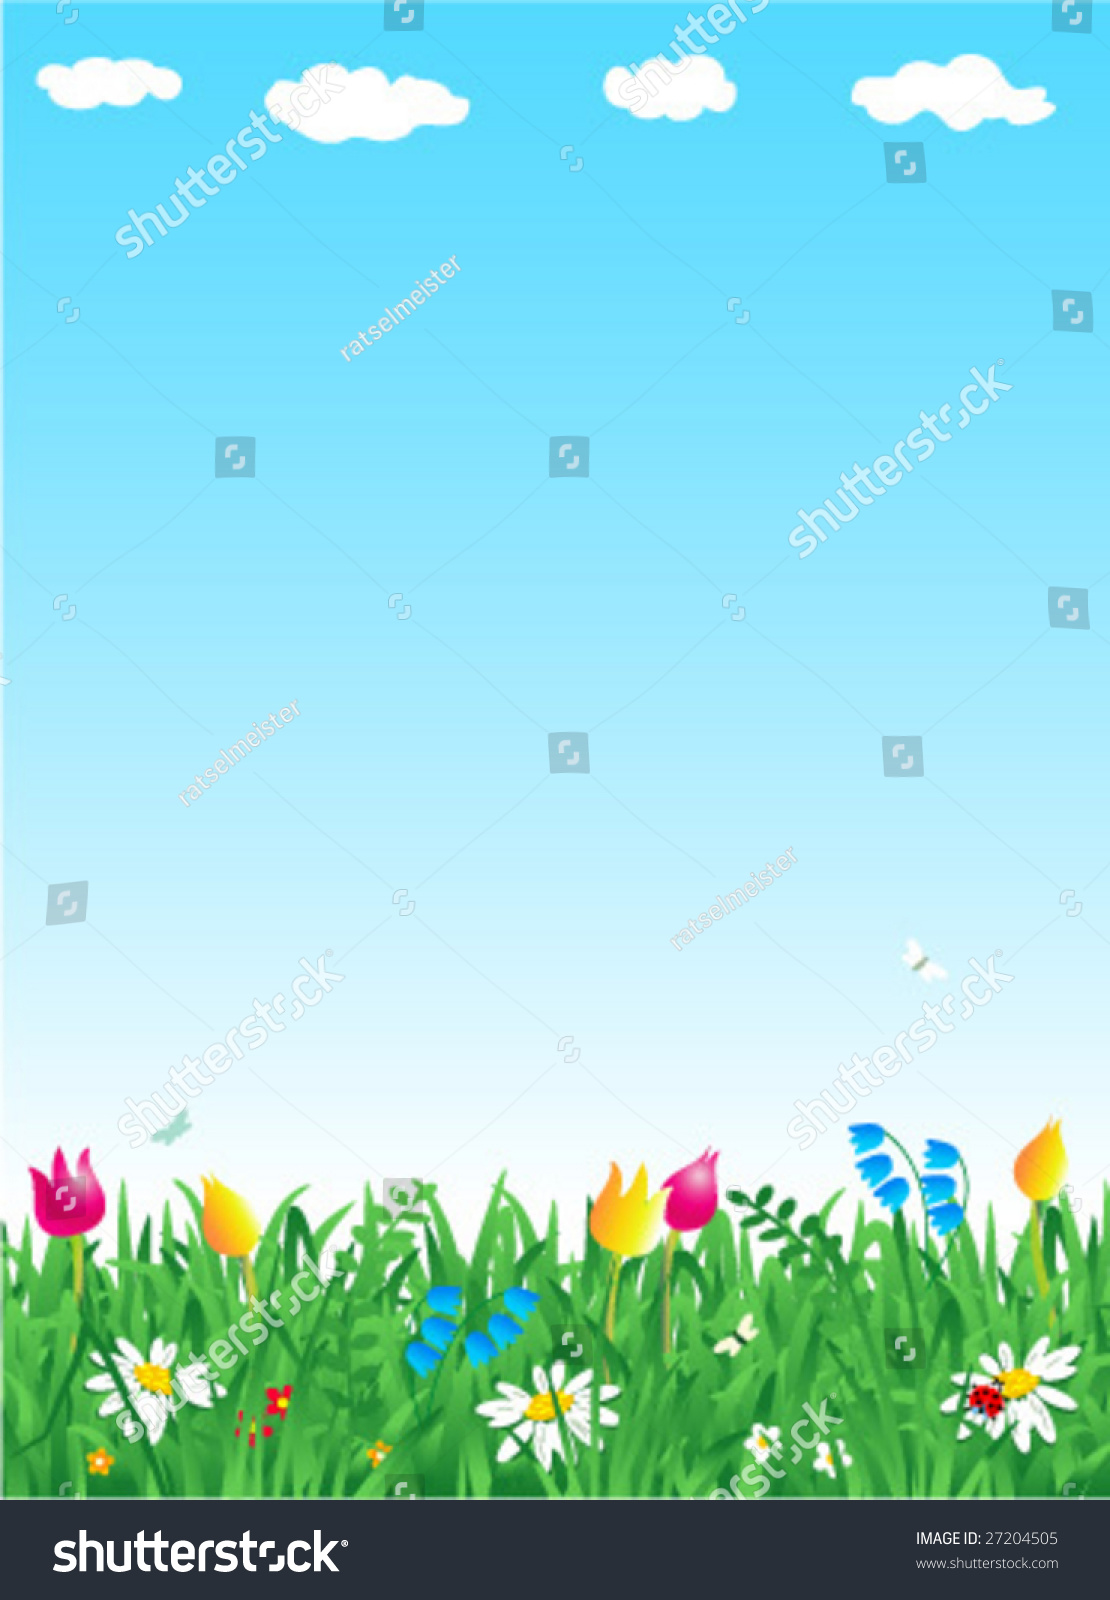 Grass And Flowers Spring Vertical Vector Background For High Res JPEG Or TIFF See Image